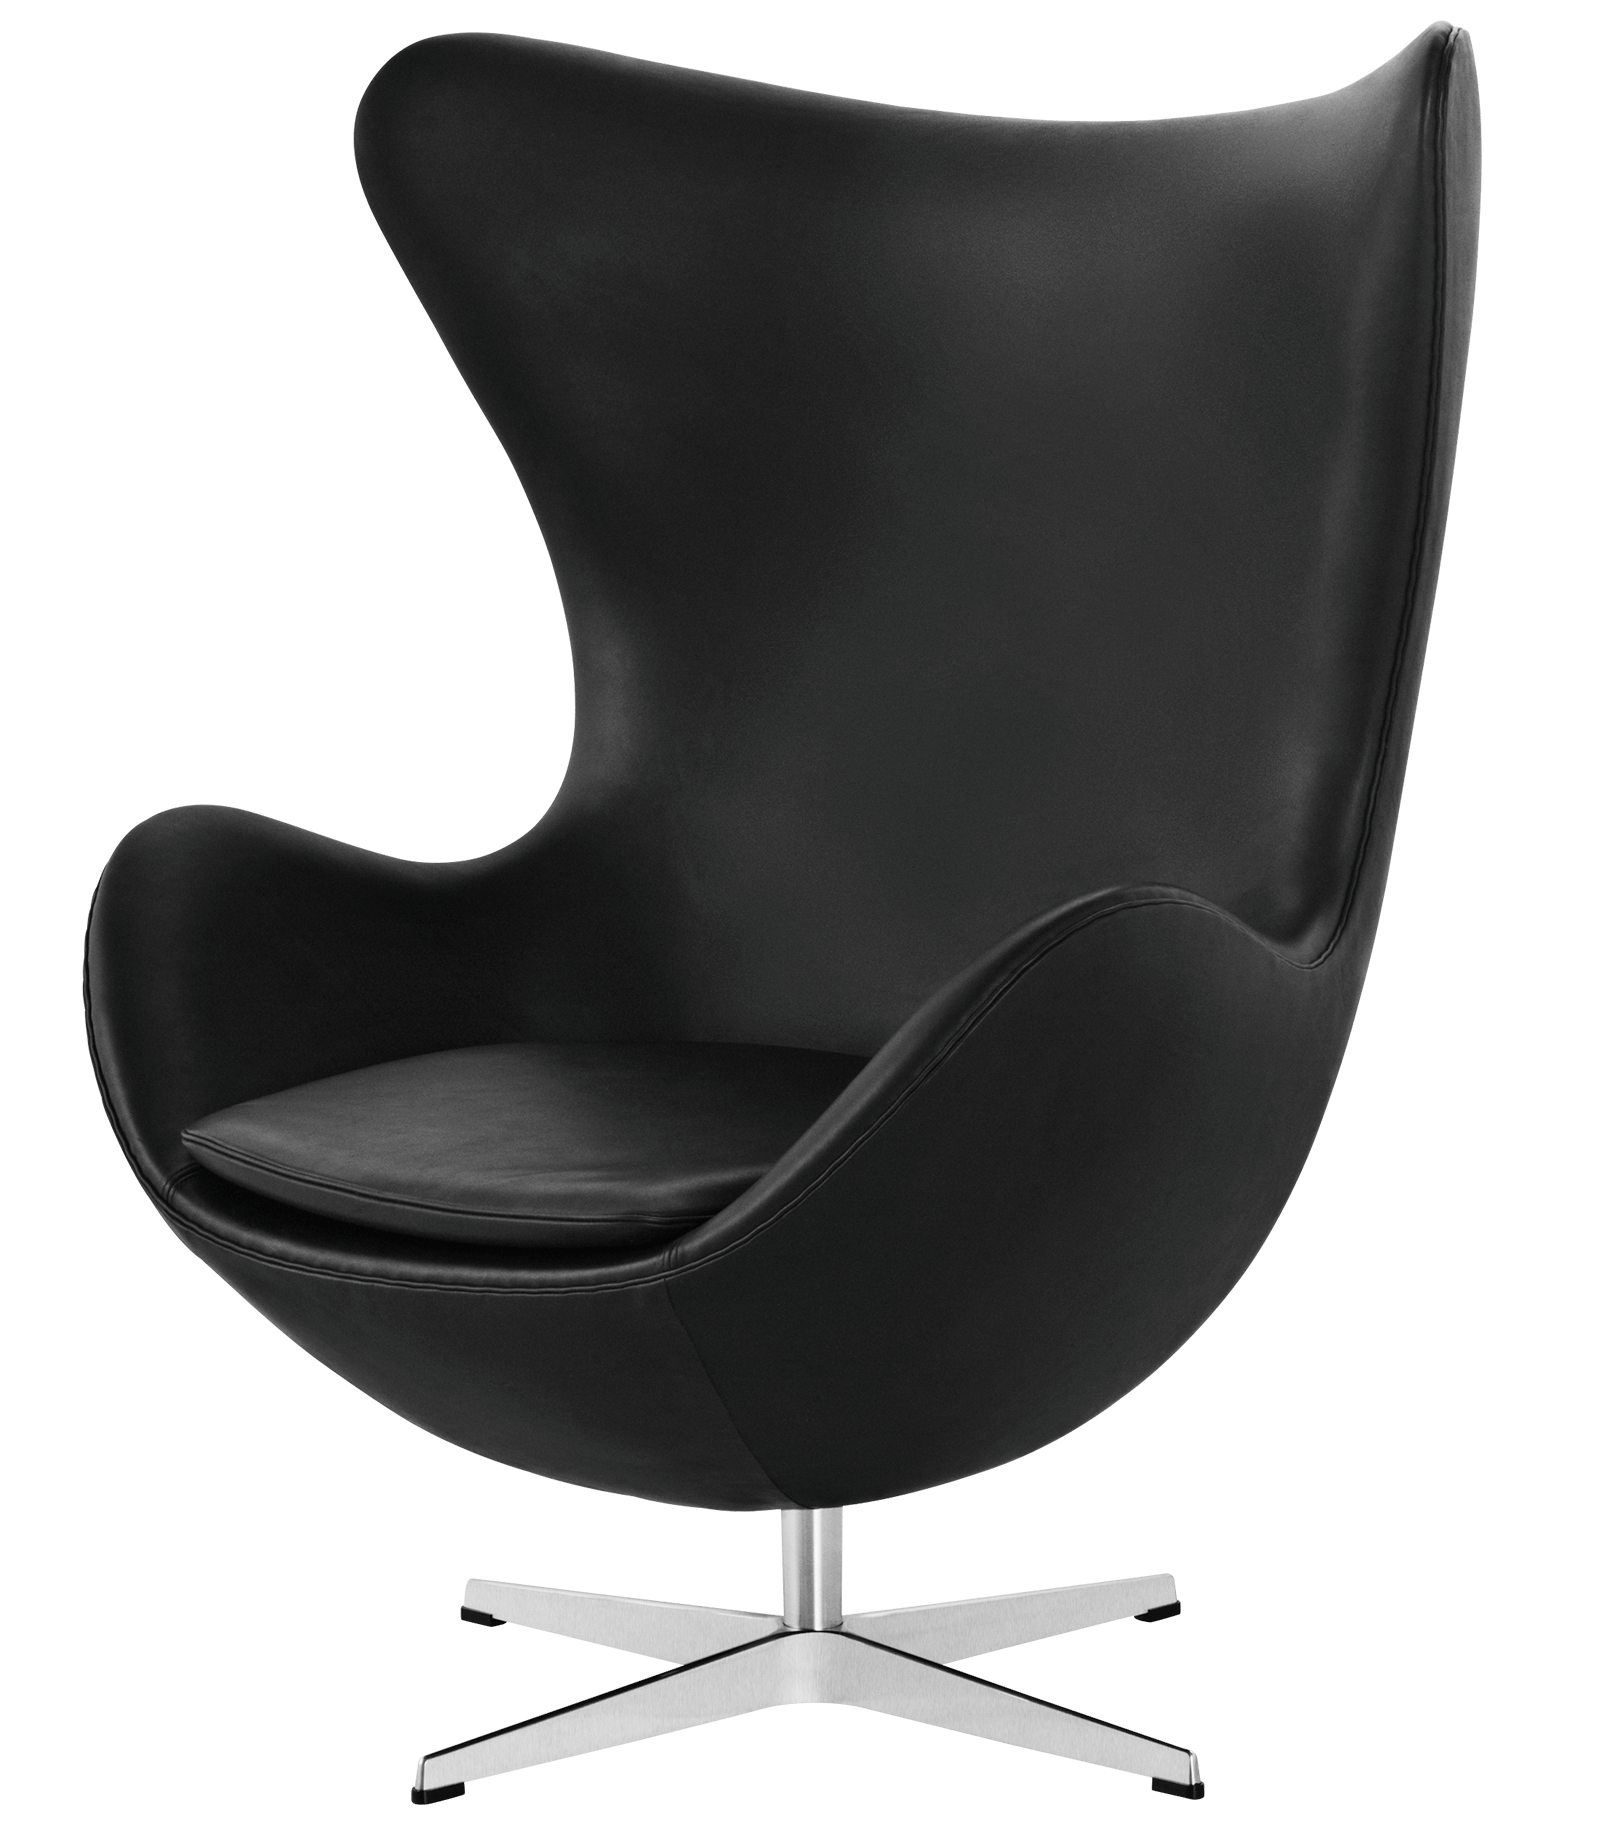 Drawing chairs easy. Egg chair leather arne